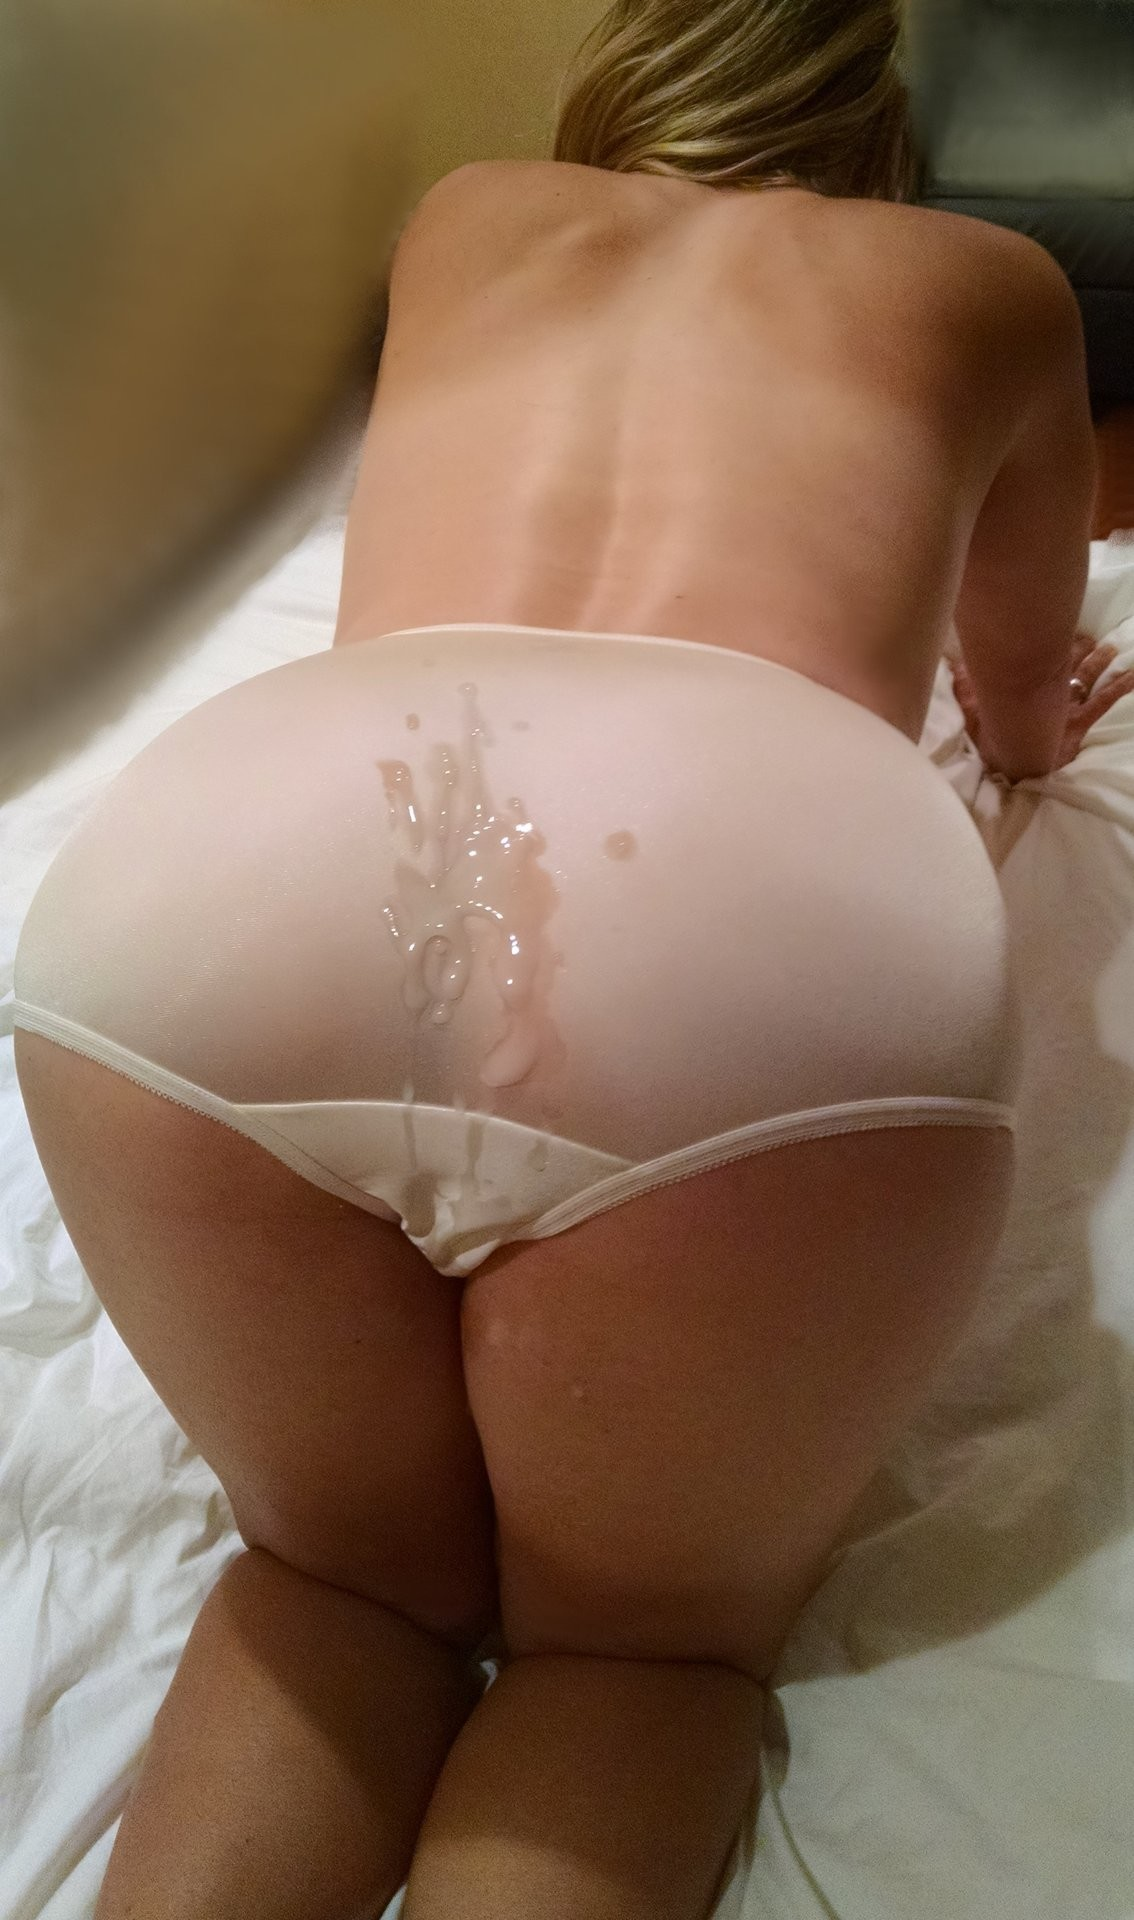 Cum in her panties pics